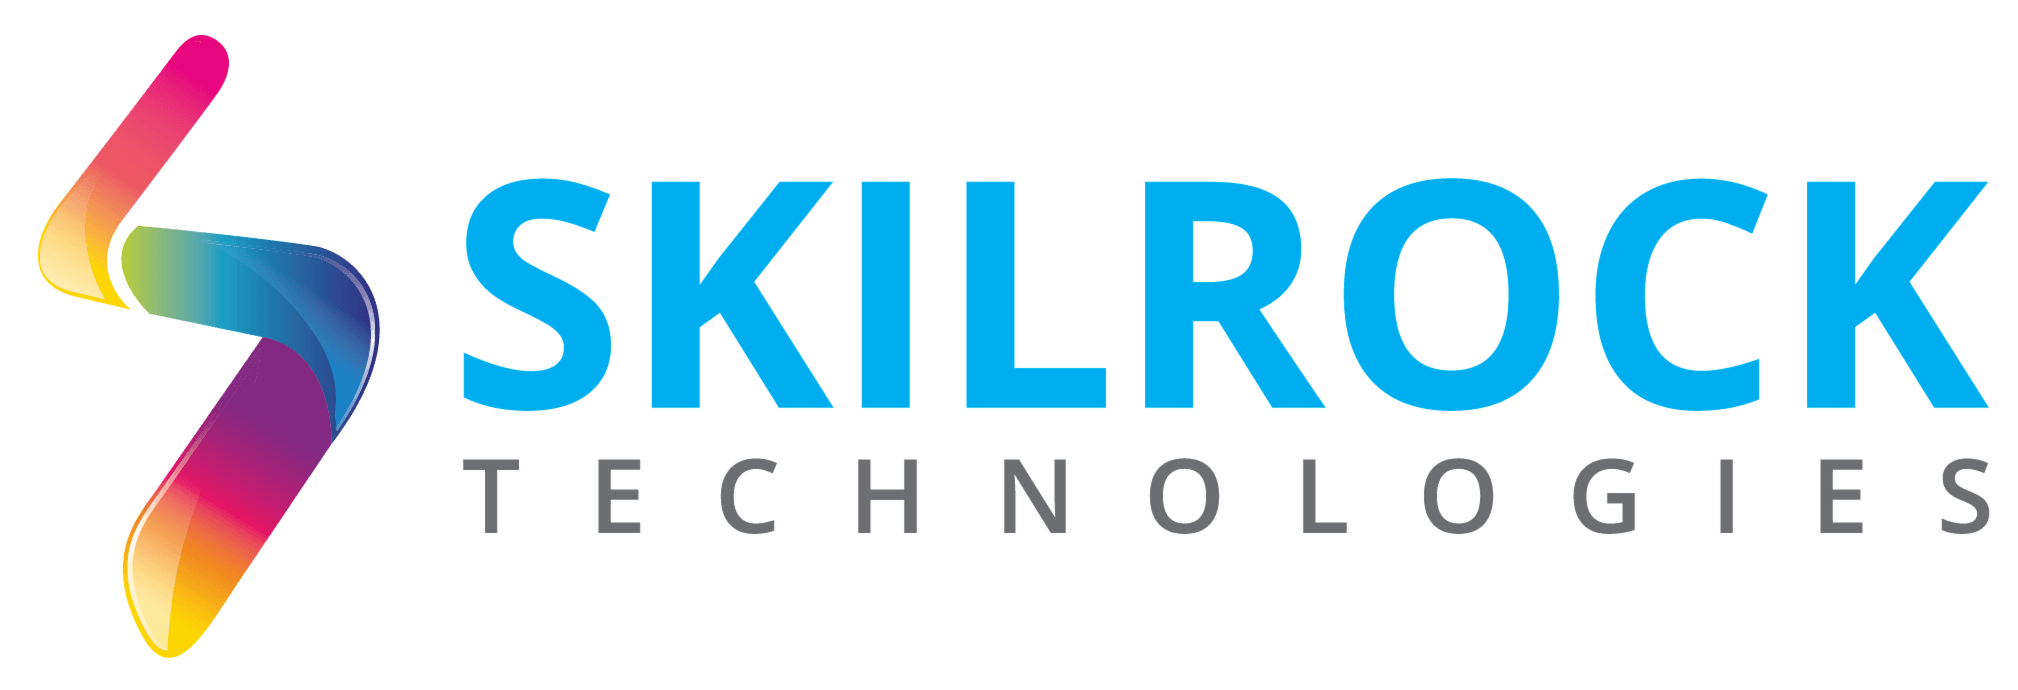 Skilrock Technologies Pvt. Ltd.